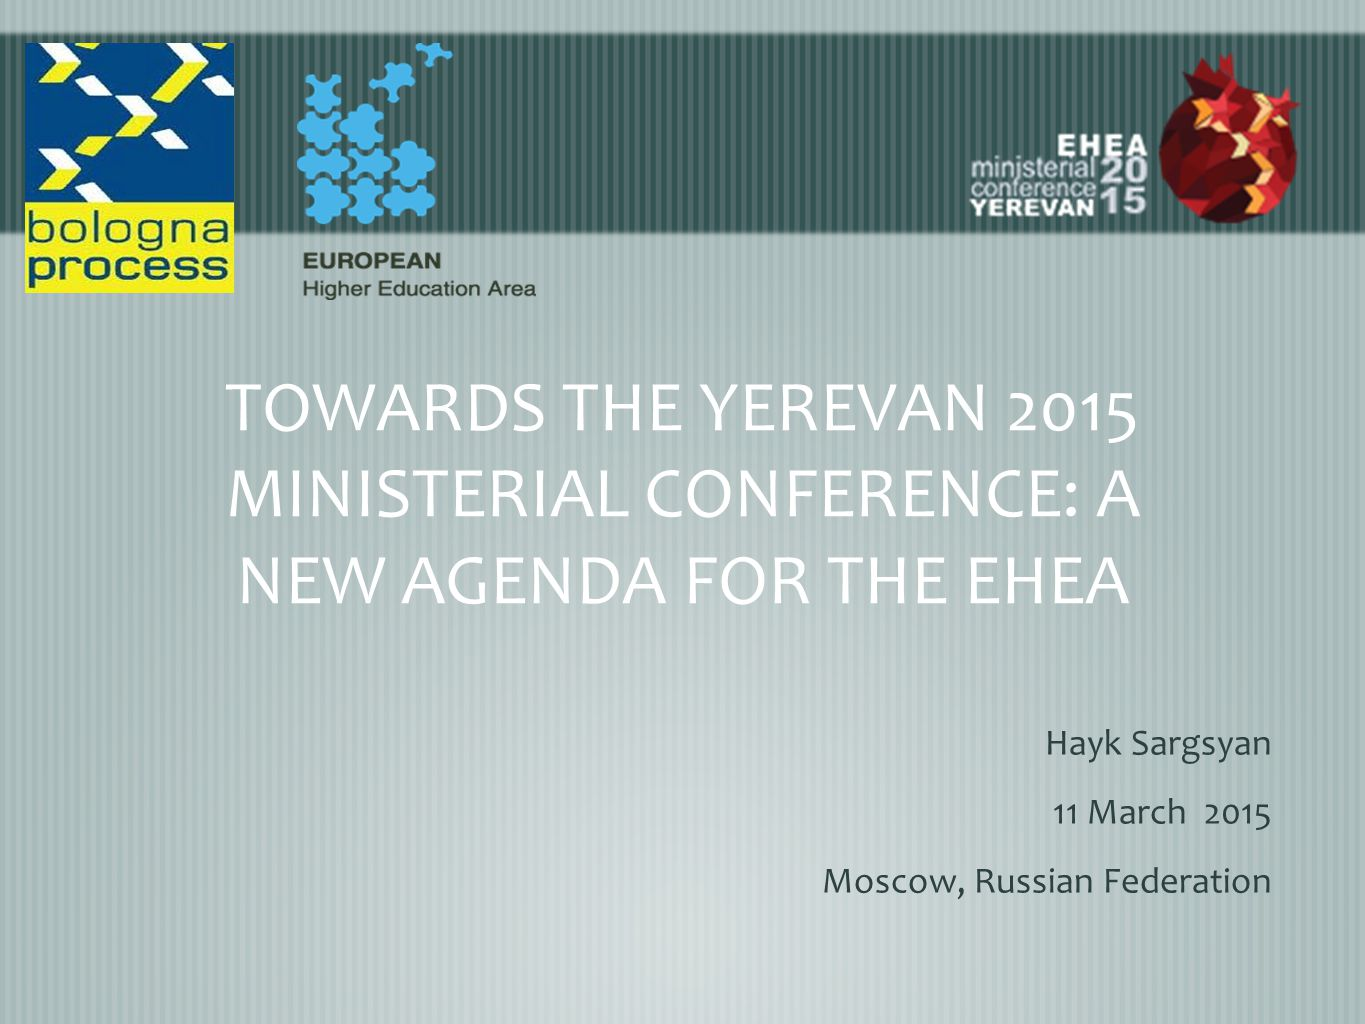 TOWARDS THE YEREVAN 2015 MINISTERIAL CONFERENCE: A NEW AGENDA FOR THE EHEA Hayk Sargsyan 11 March 2015 Moscow, Russian Federation